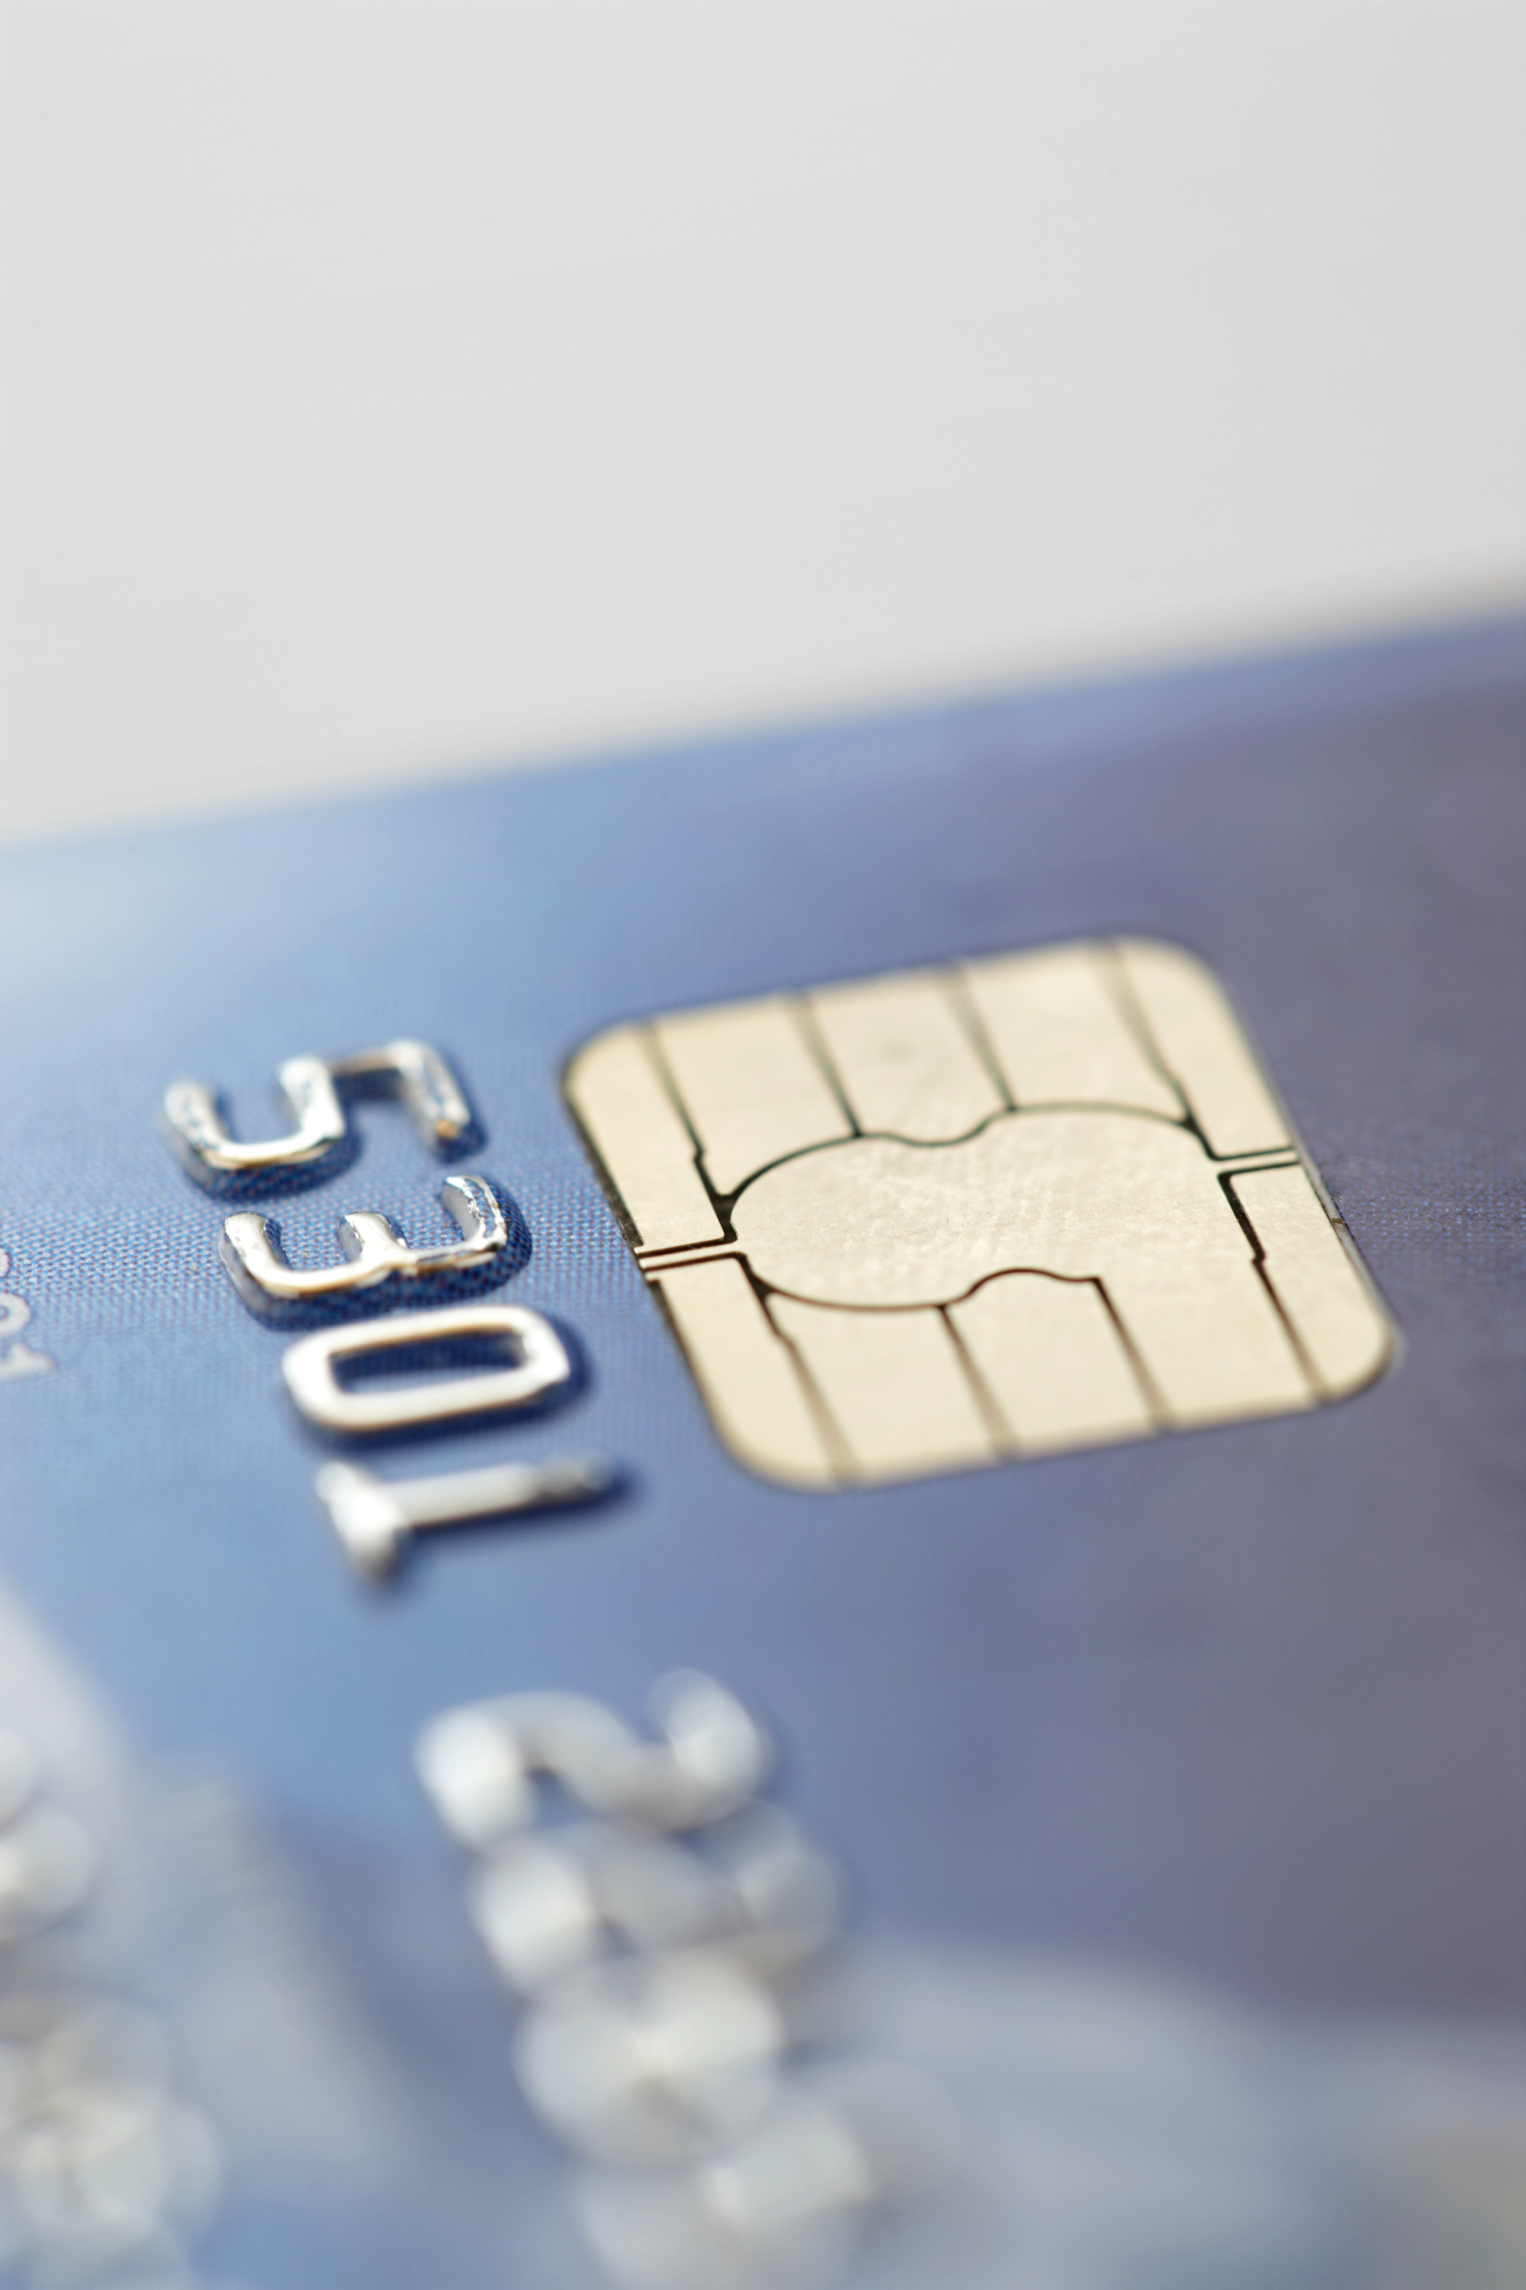 How to Identify a Credit Card by the Account Number   Chron.com